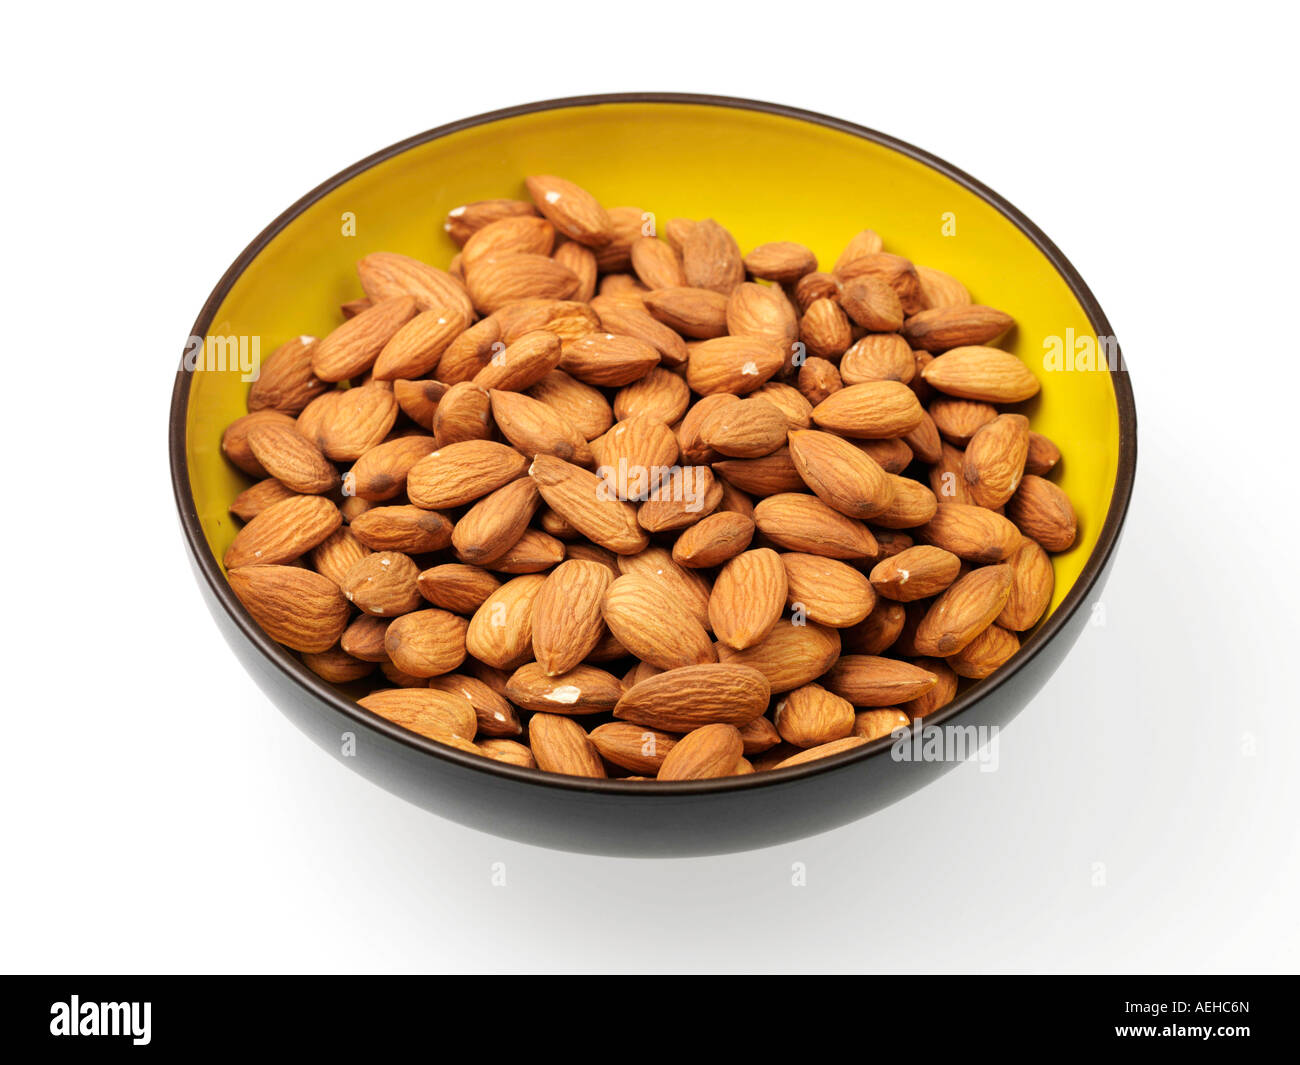 Bowl Full Of Healthy Vegetarian Almonds Against A White Background With A Clipping Path And No People Stock Photo